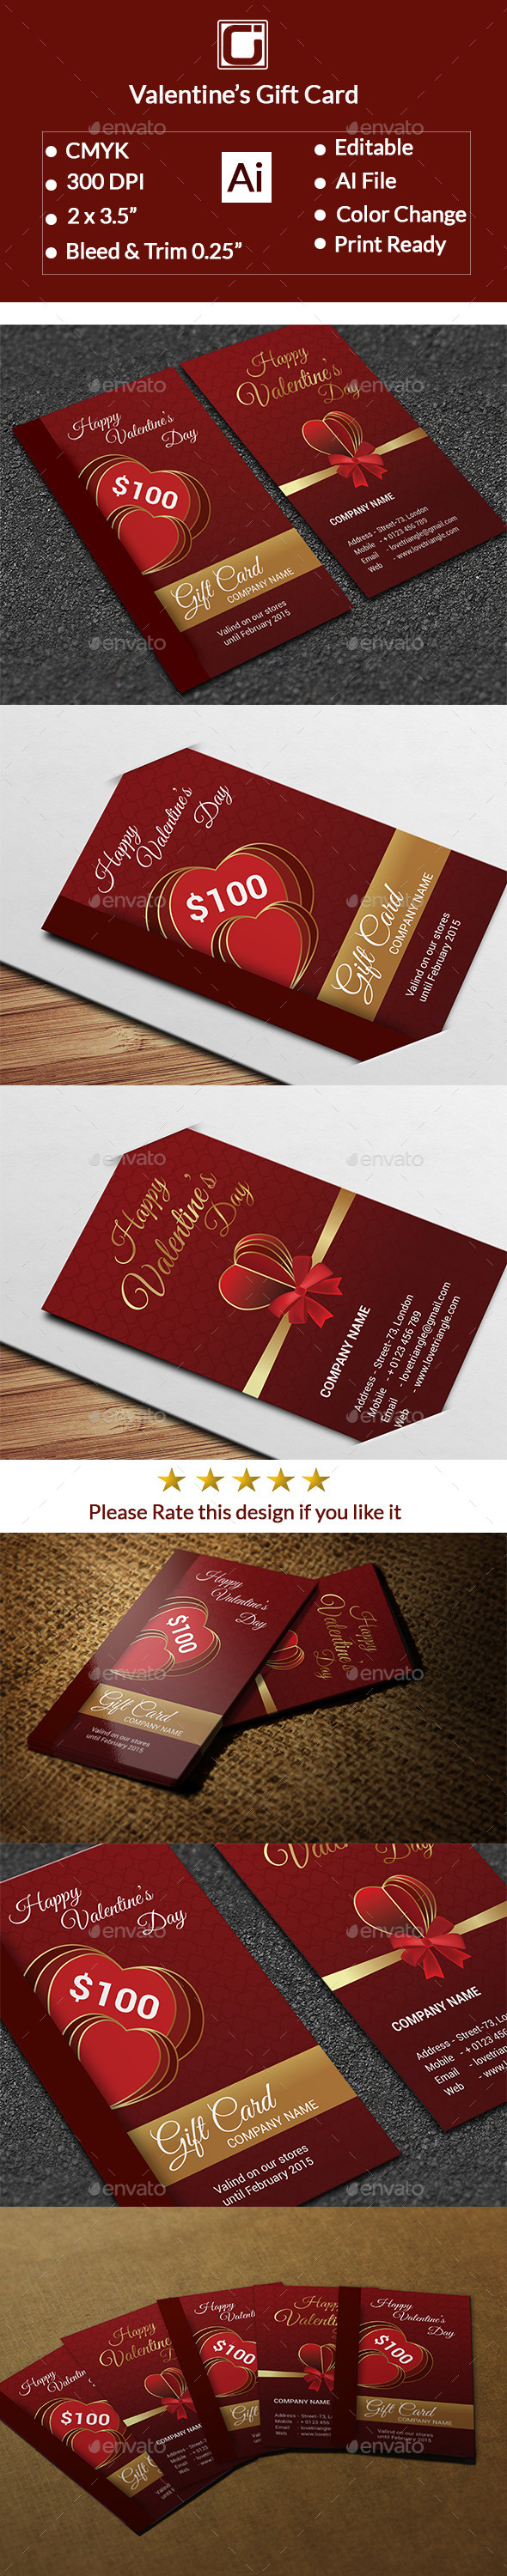 GraphicRiver Valentine s Gift Card 10169580